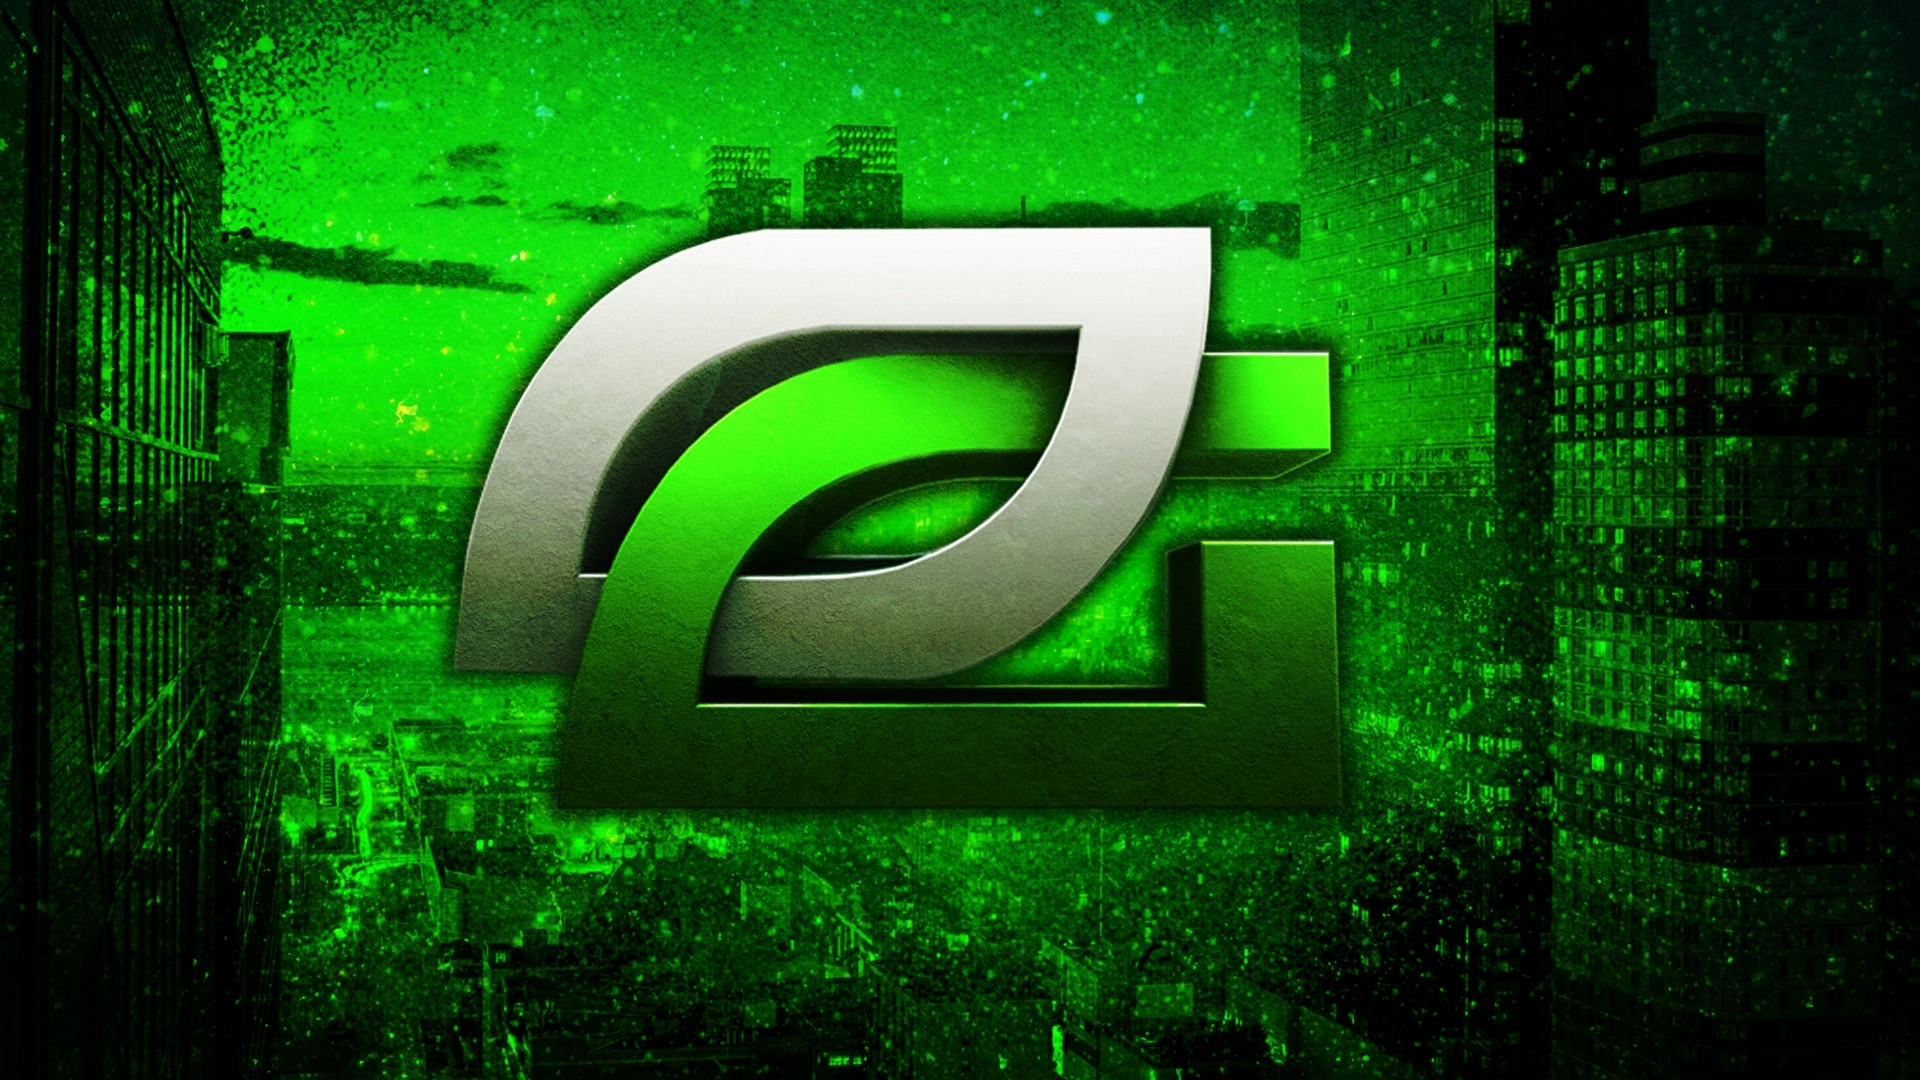 optic-gaming-roster-wide-wallpaper - wallpaper.wiki